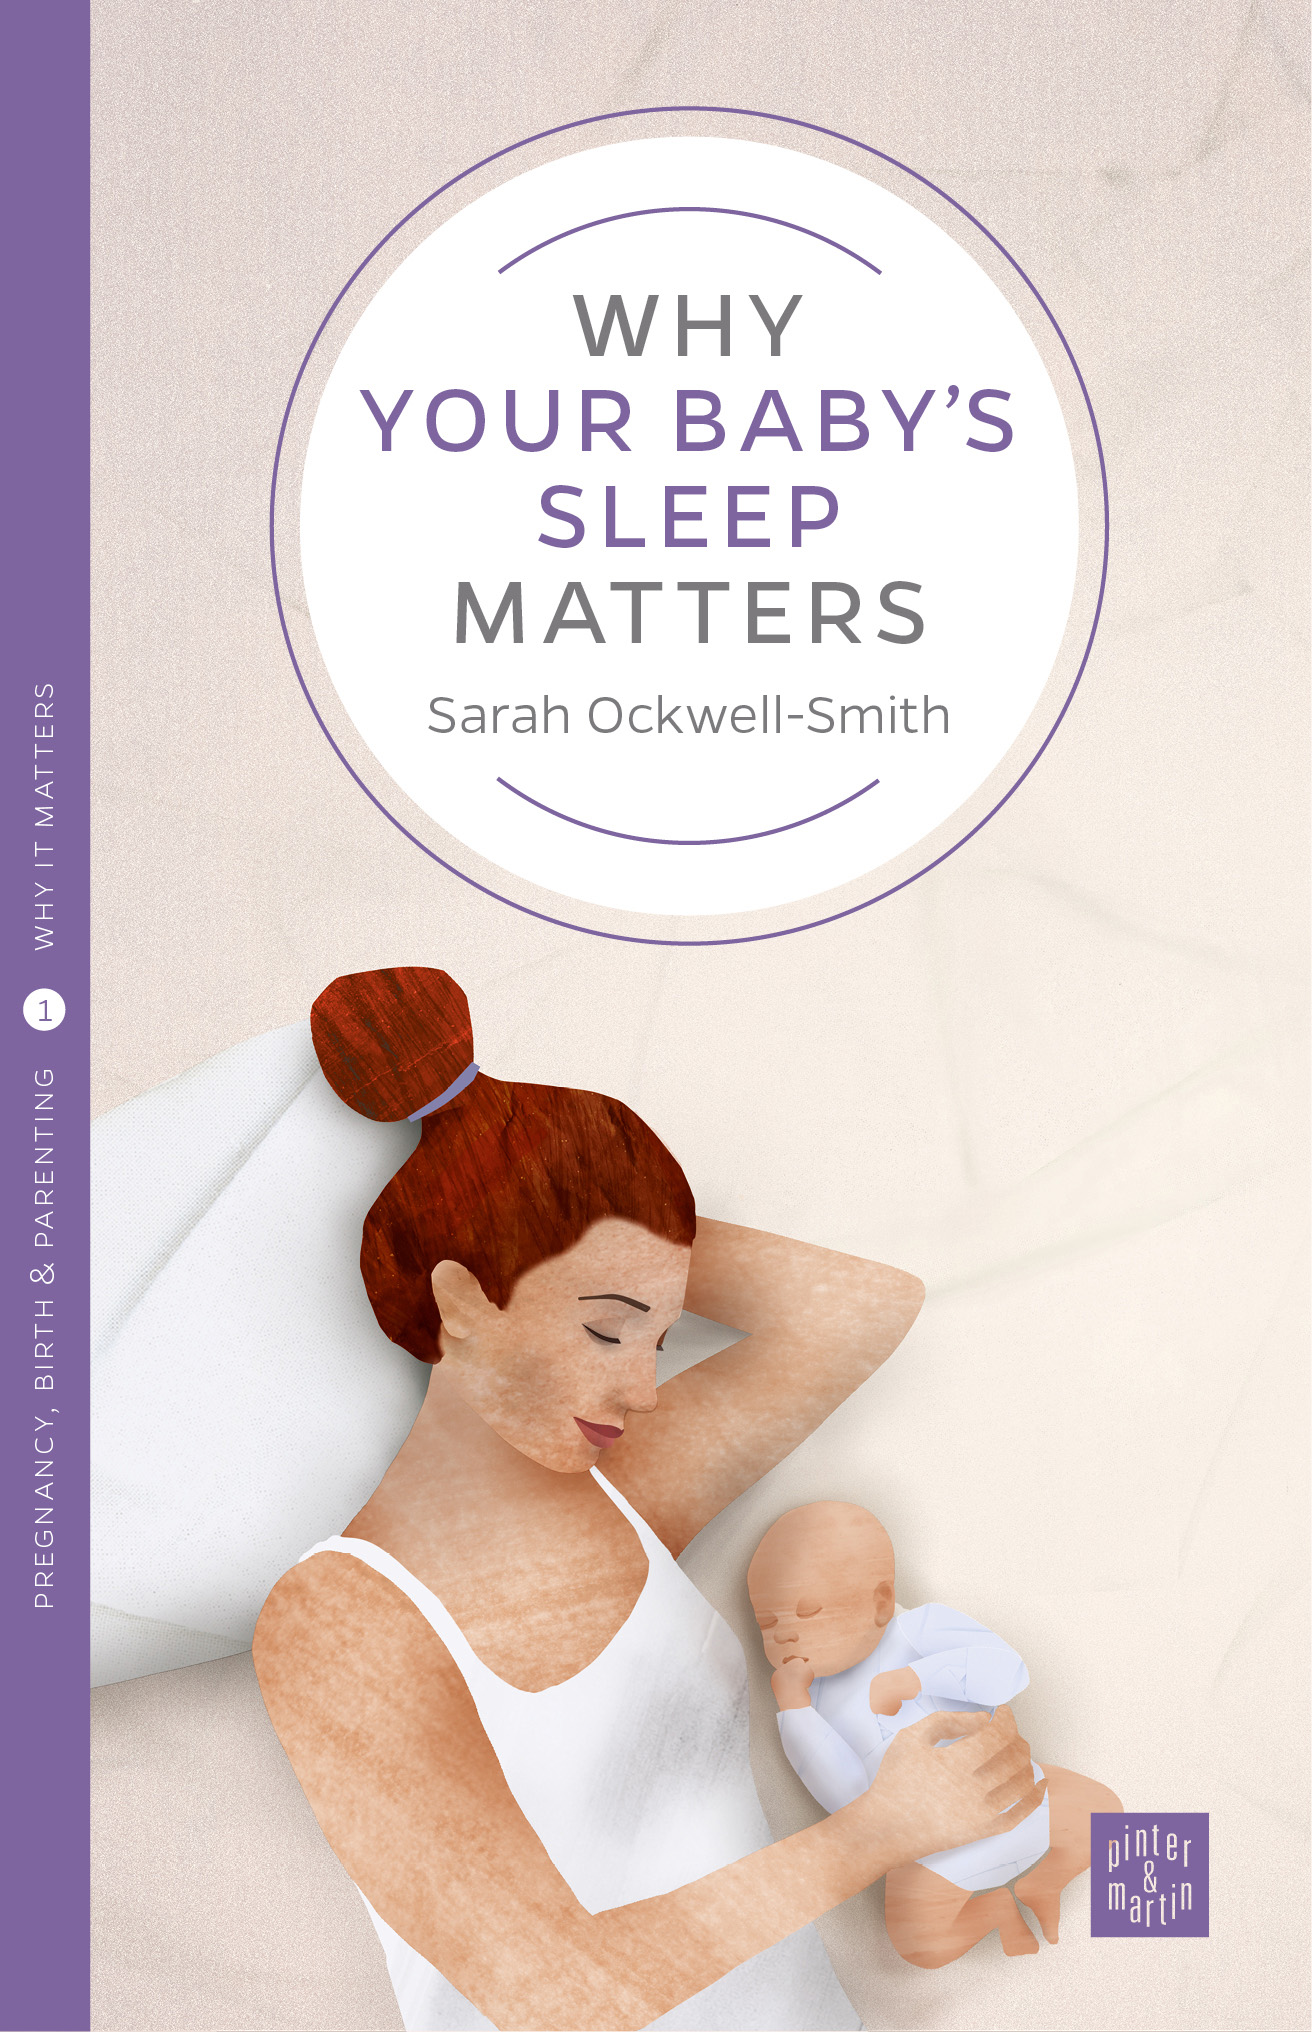 Why Your Baby's Sleep Matters